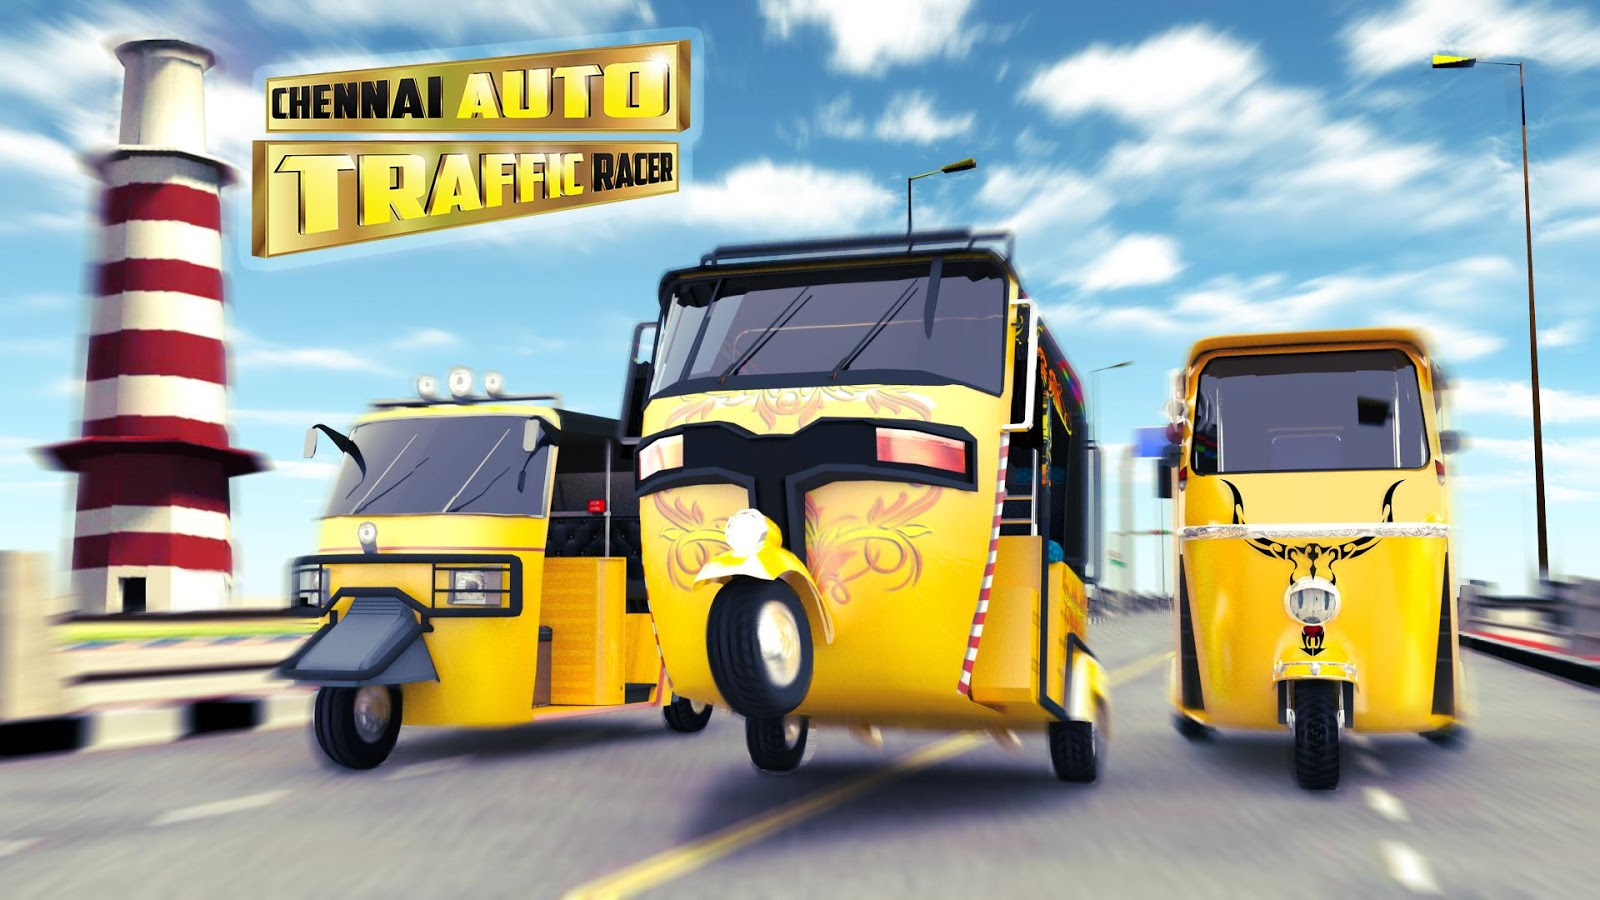 Chennai Auto Traffic Racer Android Apps On Google Play